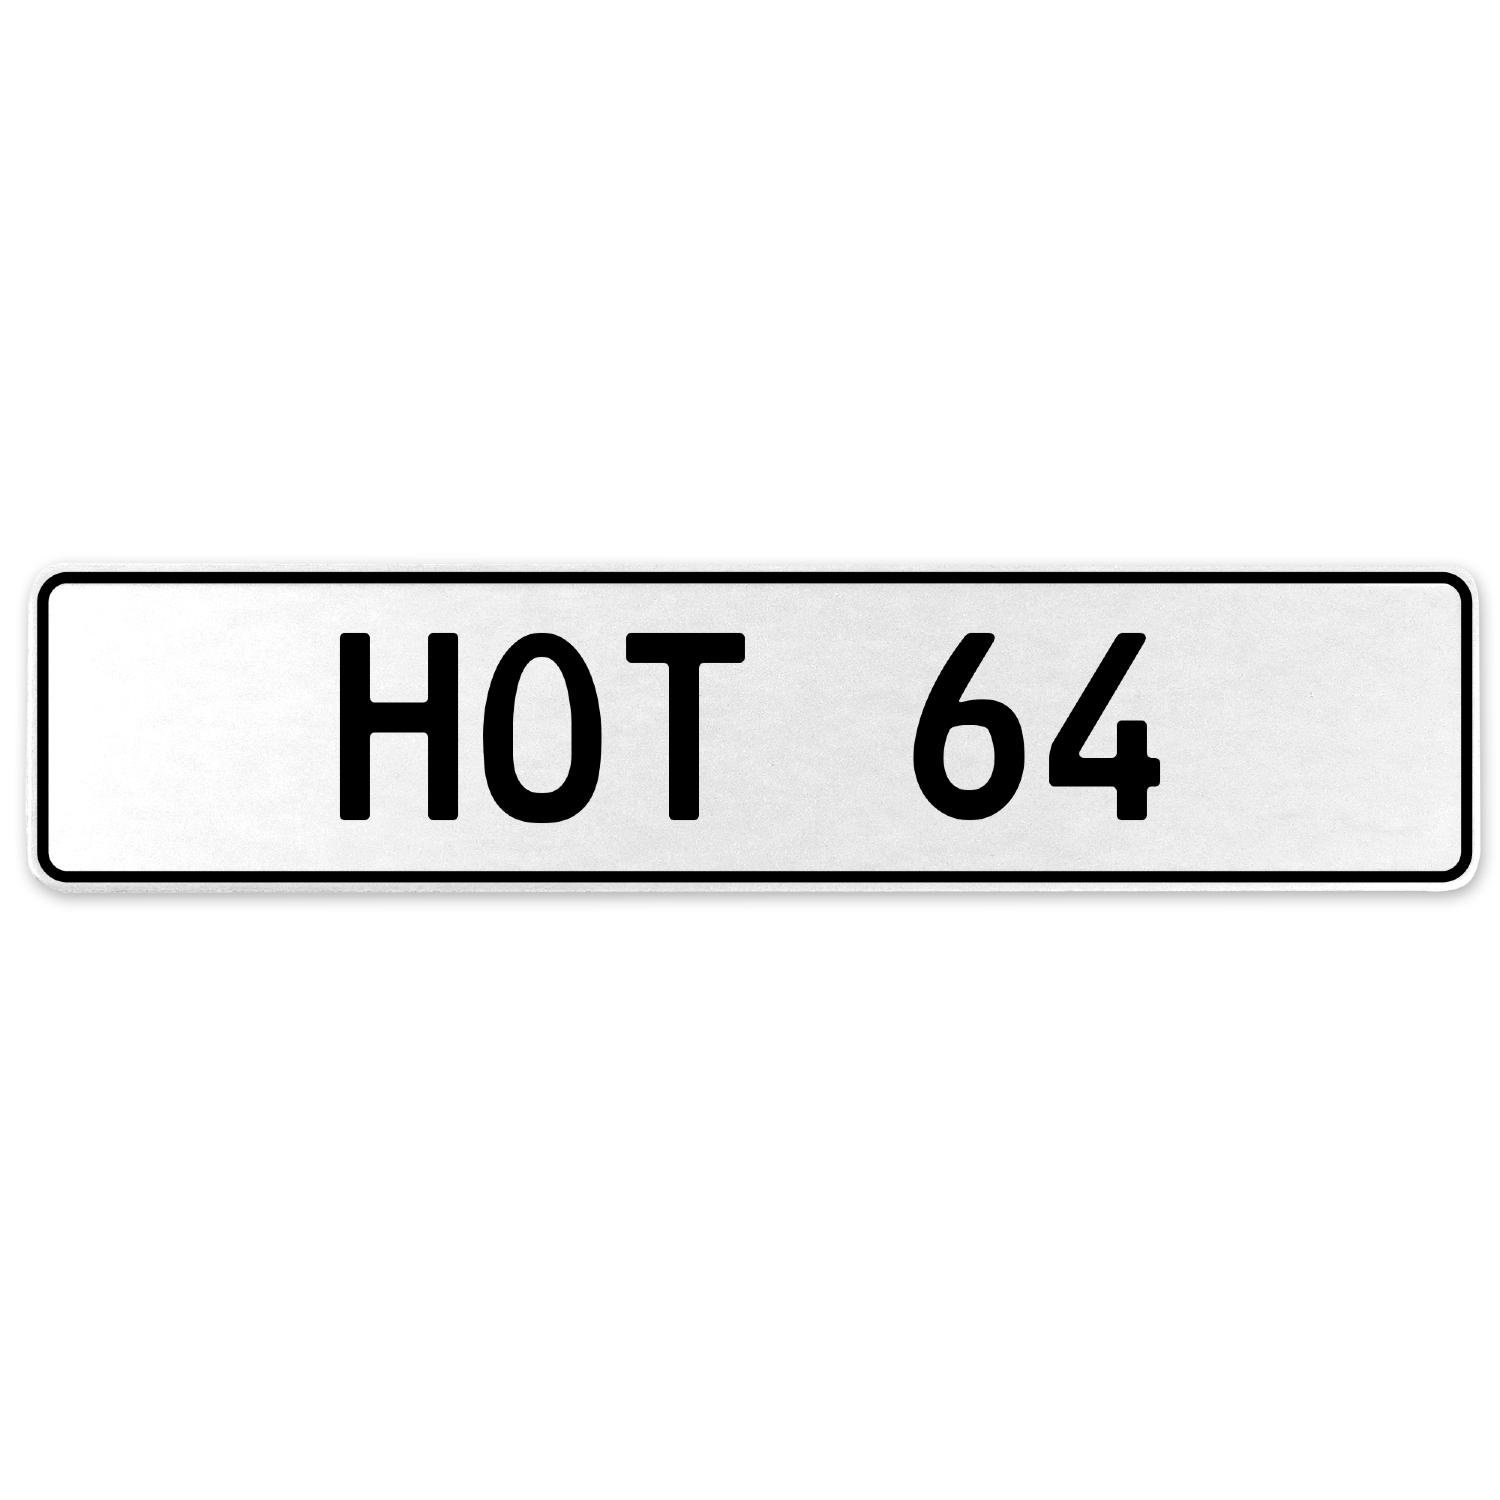 Vintage Parts 553671 HOT 64 White Stamped Aluminum European License Plate